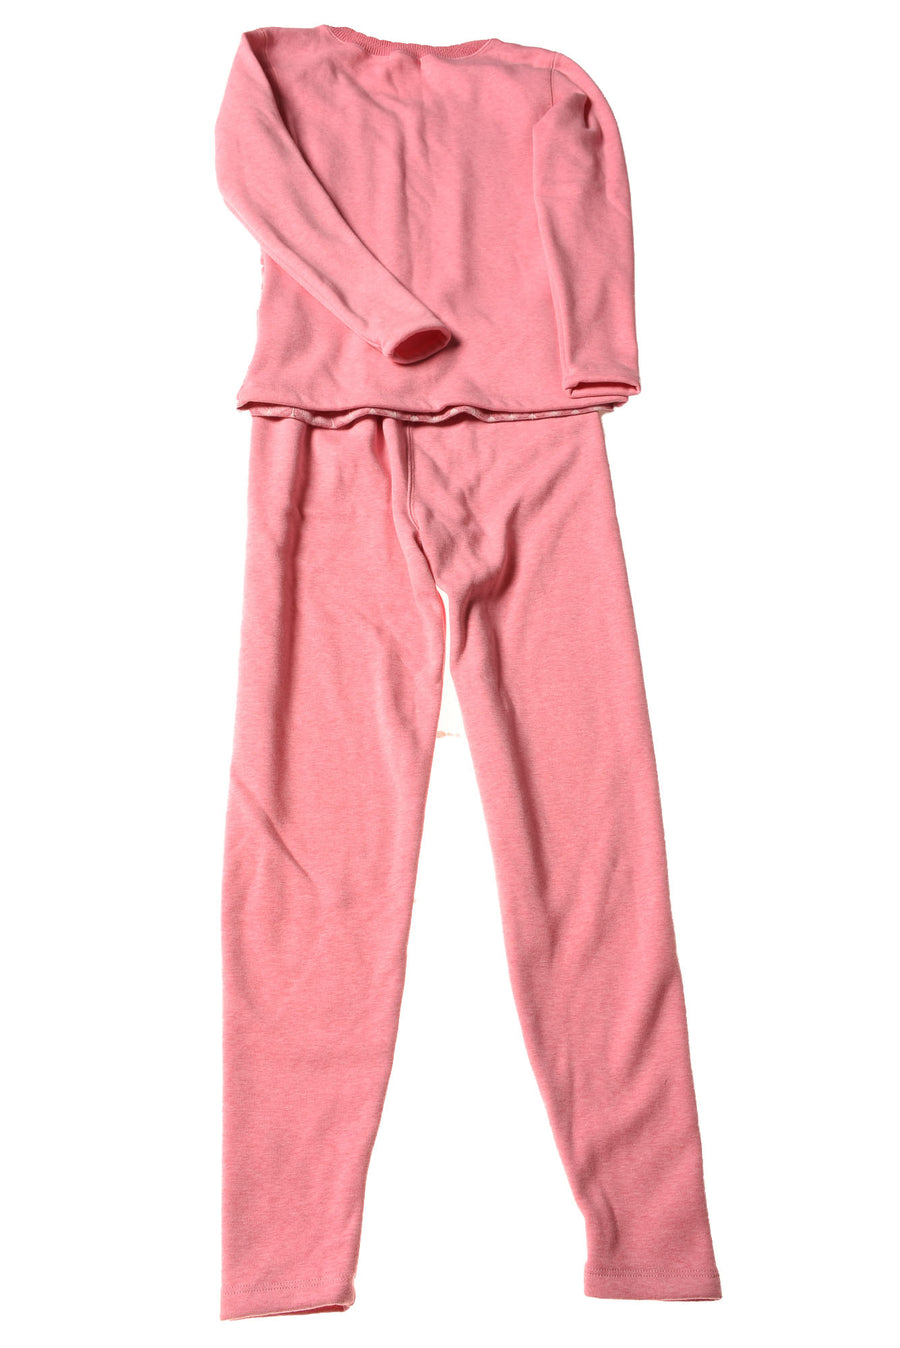 NEW Geeda Girl's Thermal Underwear XX-Large Pink / Print